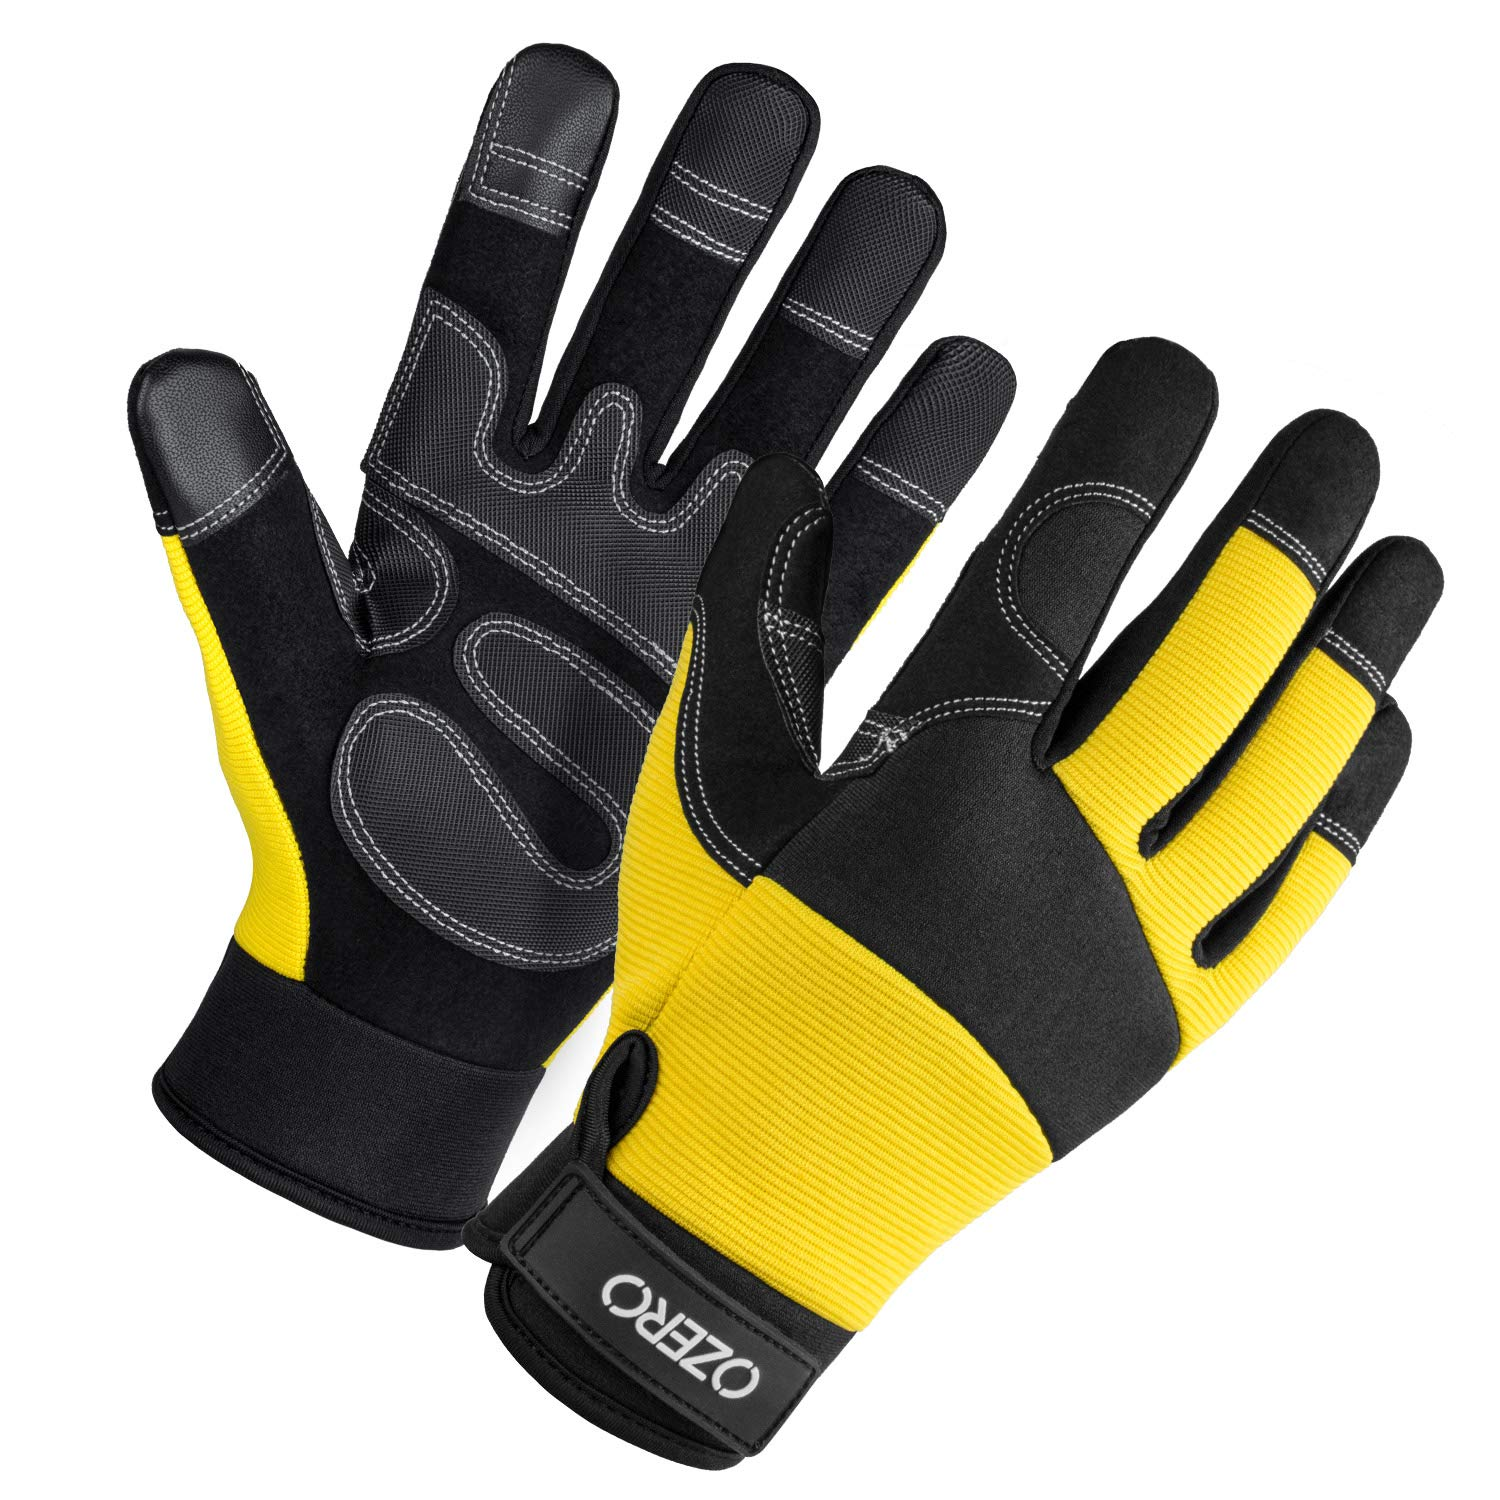 Mechanic Gloves Synthetic Leather Work Glove and Women 35% OFF Dallas Mall for Men